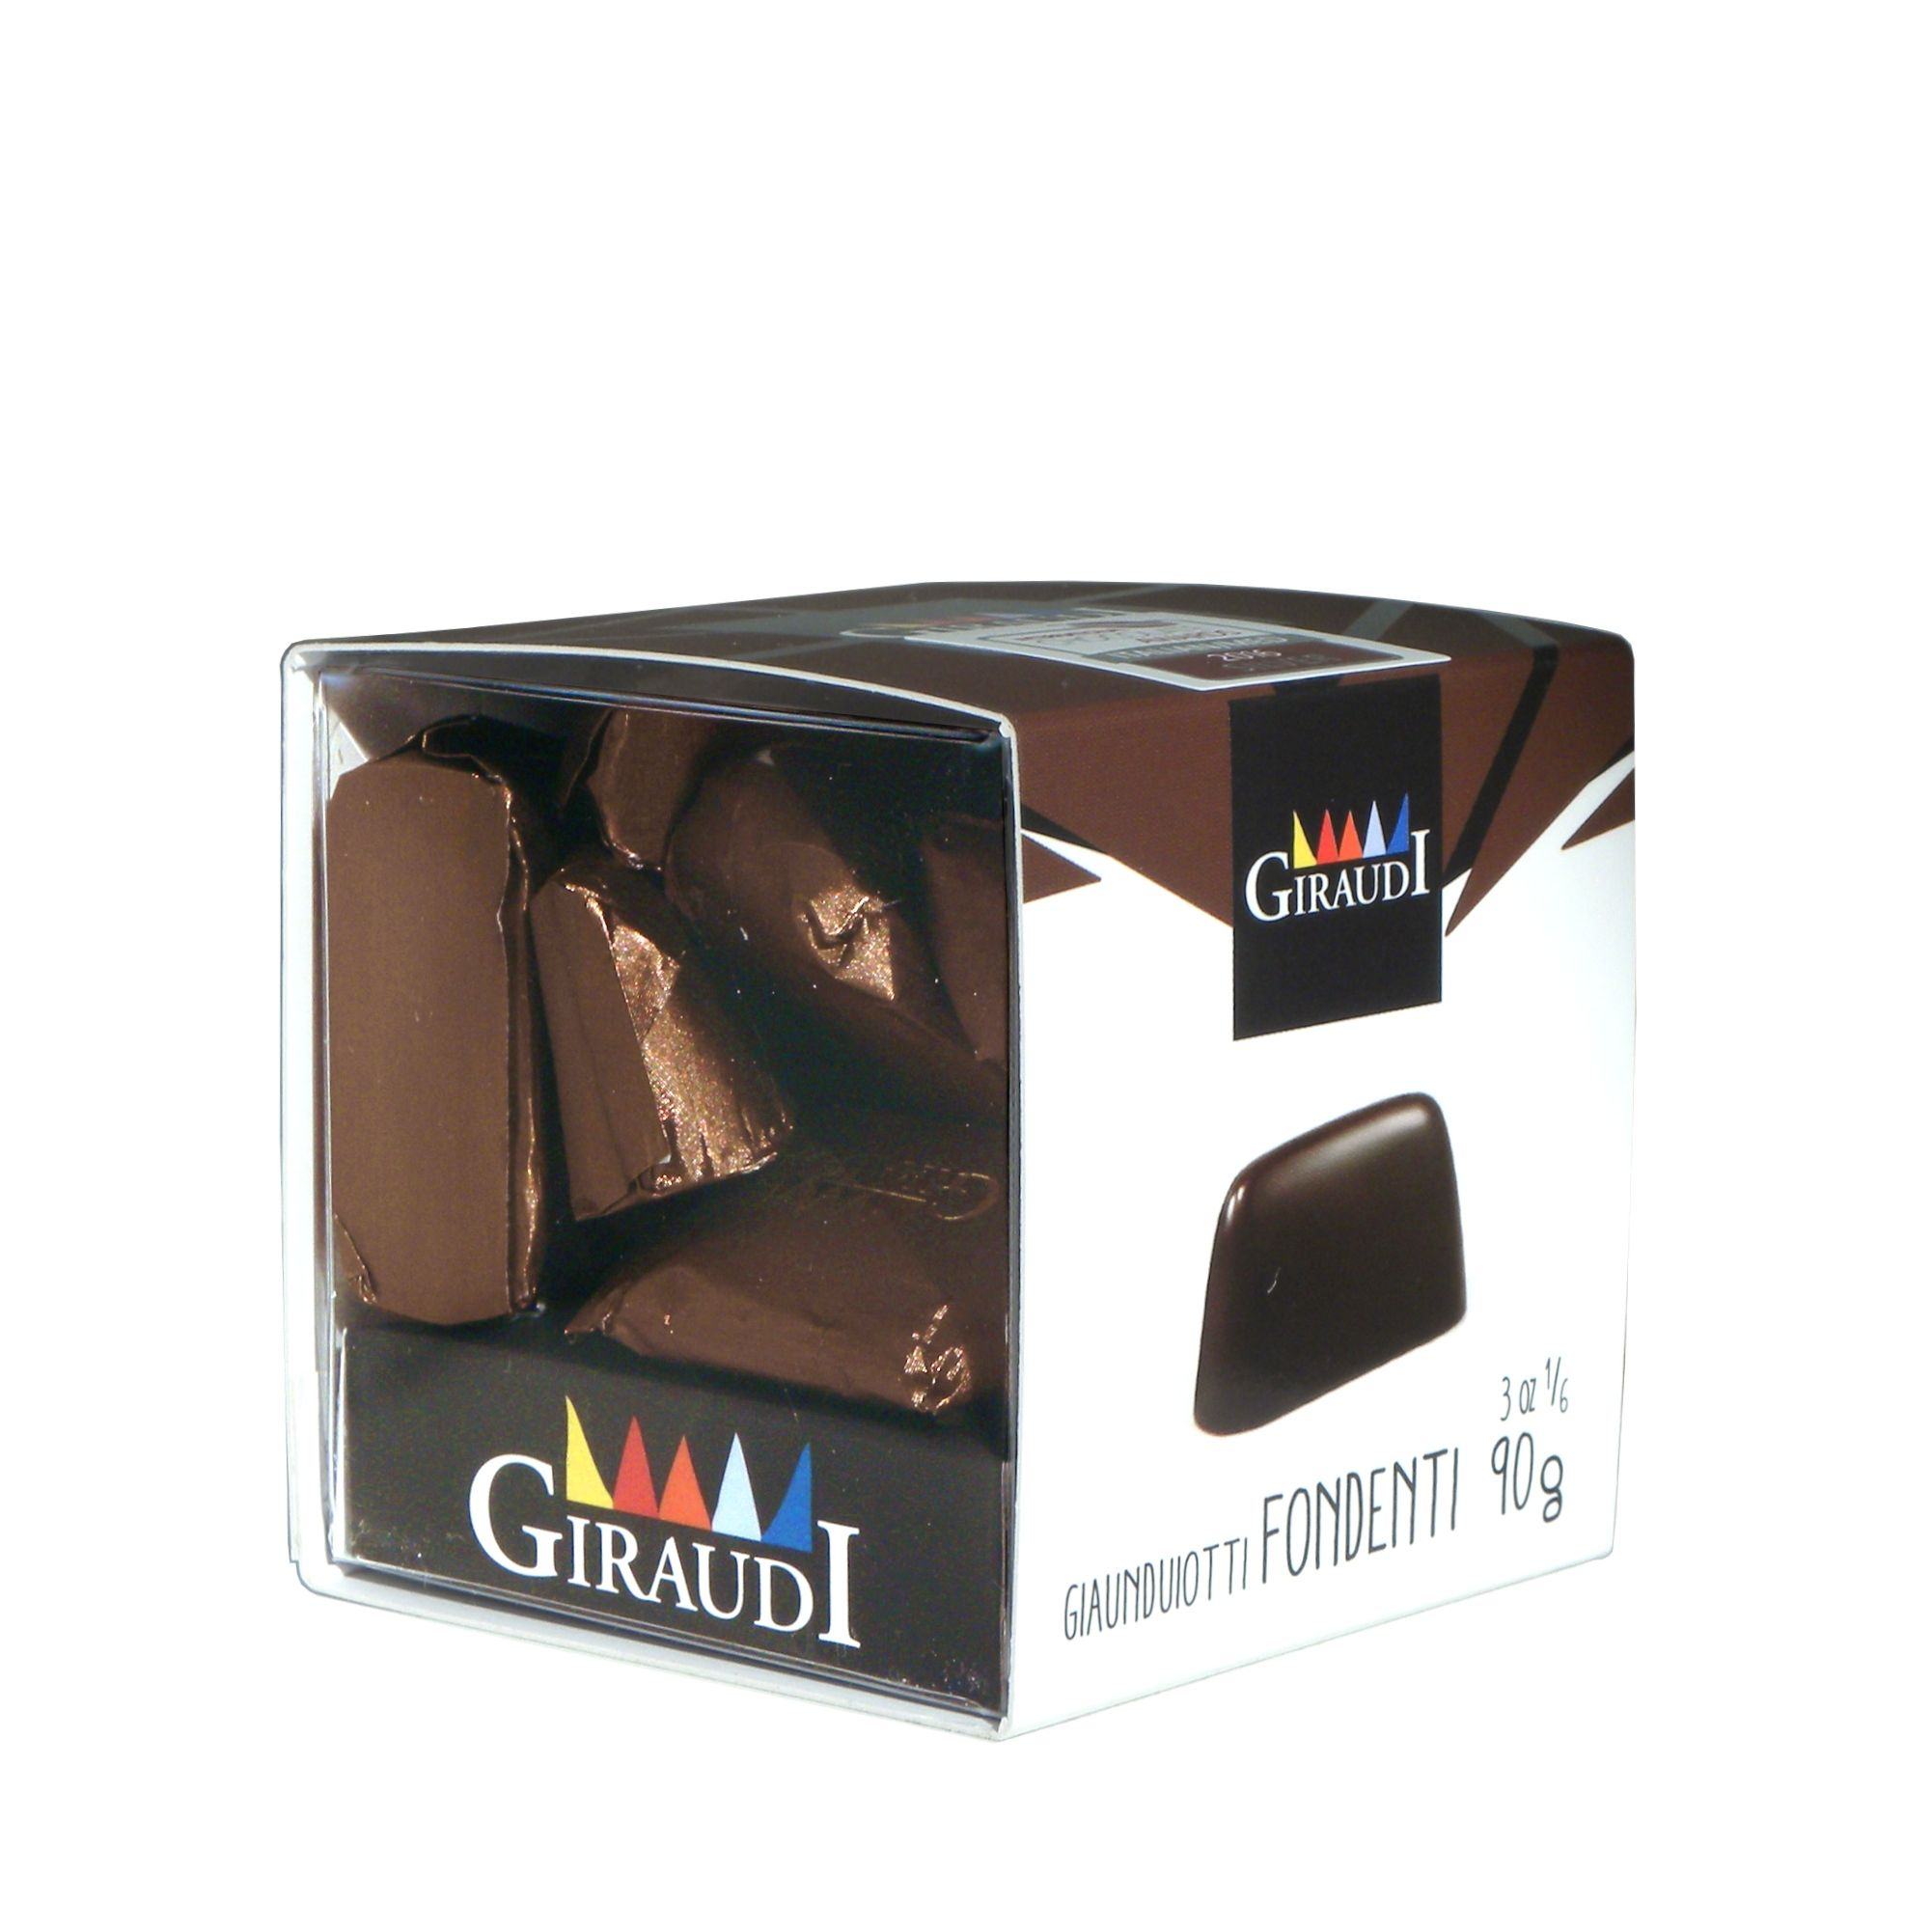 Giraudi gianduiotti fondenti – Giraudi dark chocolate Gianduiotti – Gustorotondo – Italian food boutique